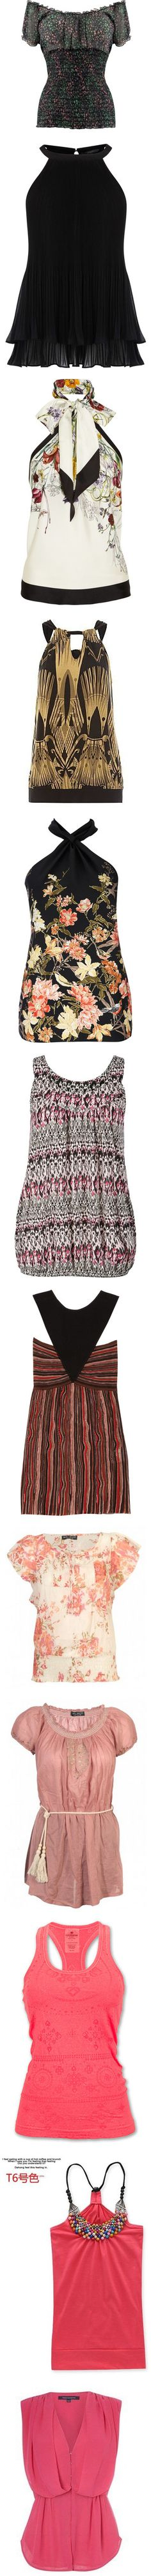 """""""LOVELY TOPS"""" by gustosamente ❤ liked on Polyvore"""